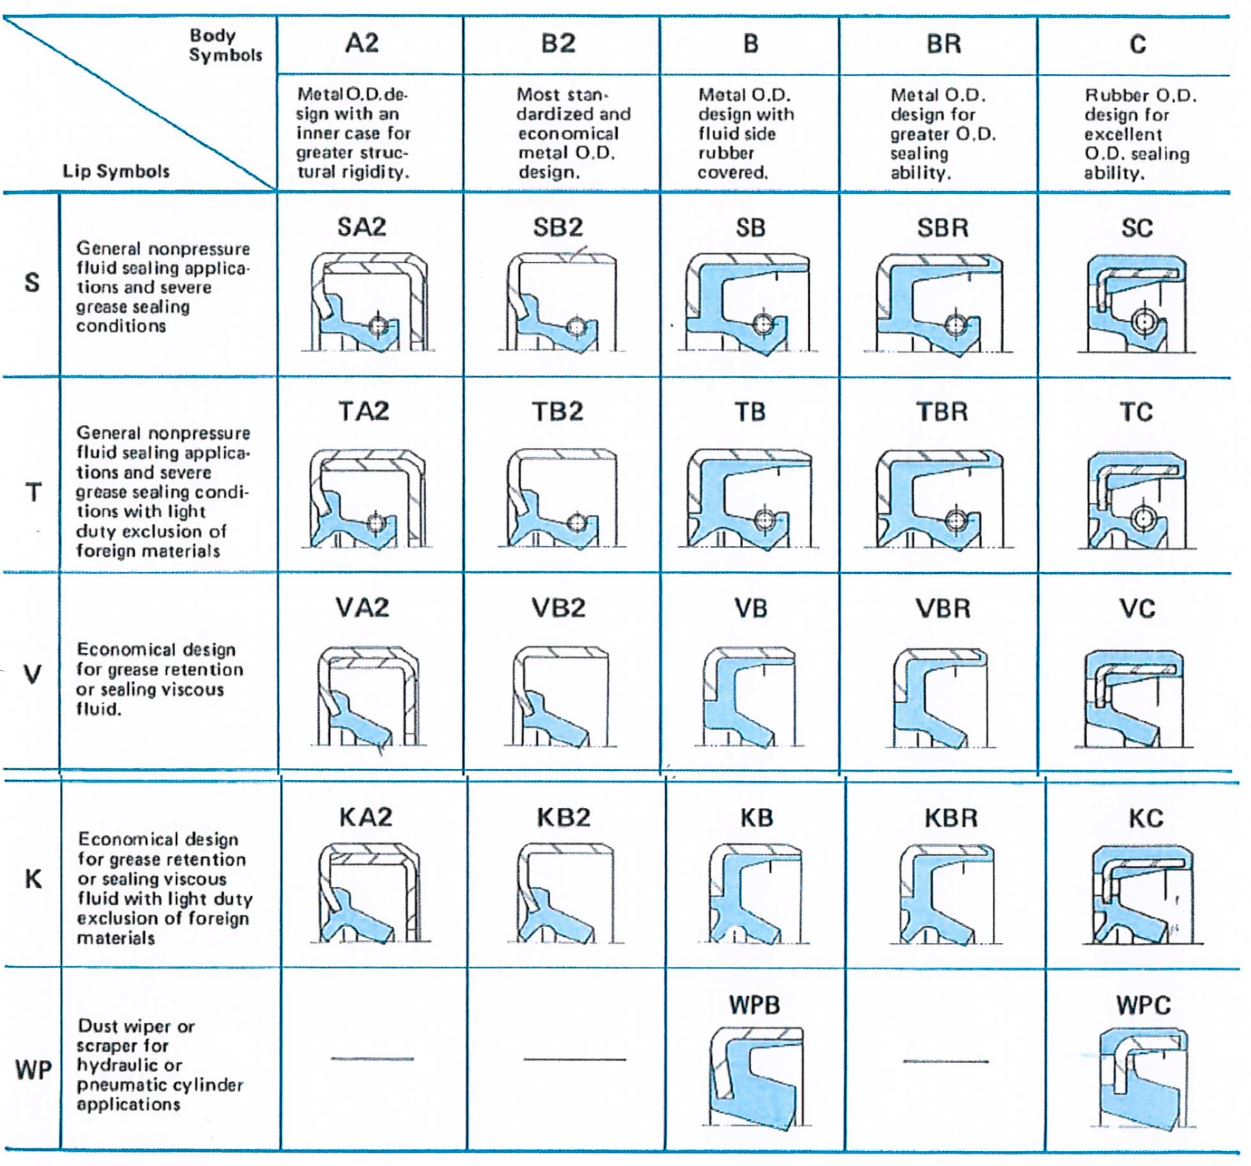 table showing 22 standard oil seal designs commonly used for a variety of applications